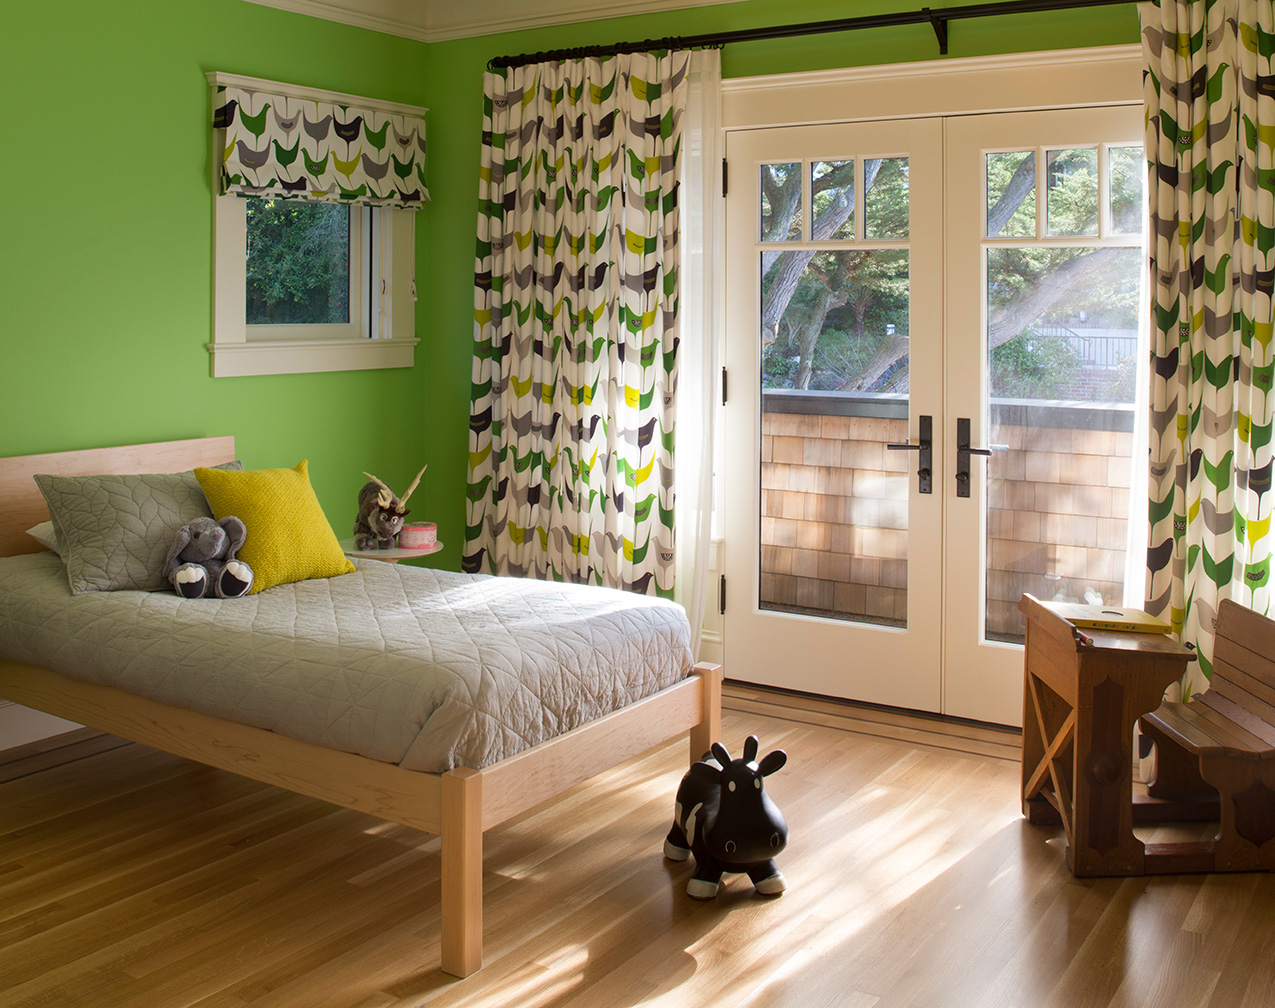 Bright Colored Kids Room with Patterned Drapery